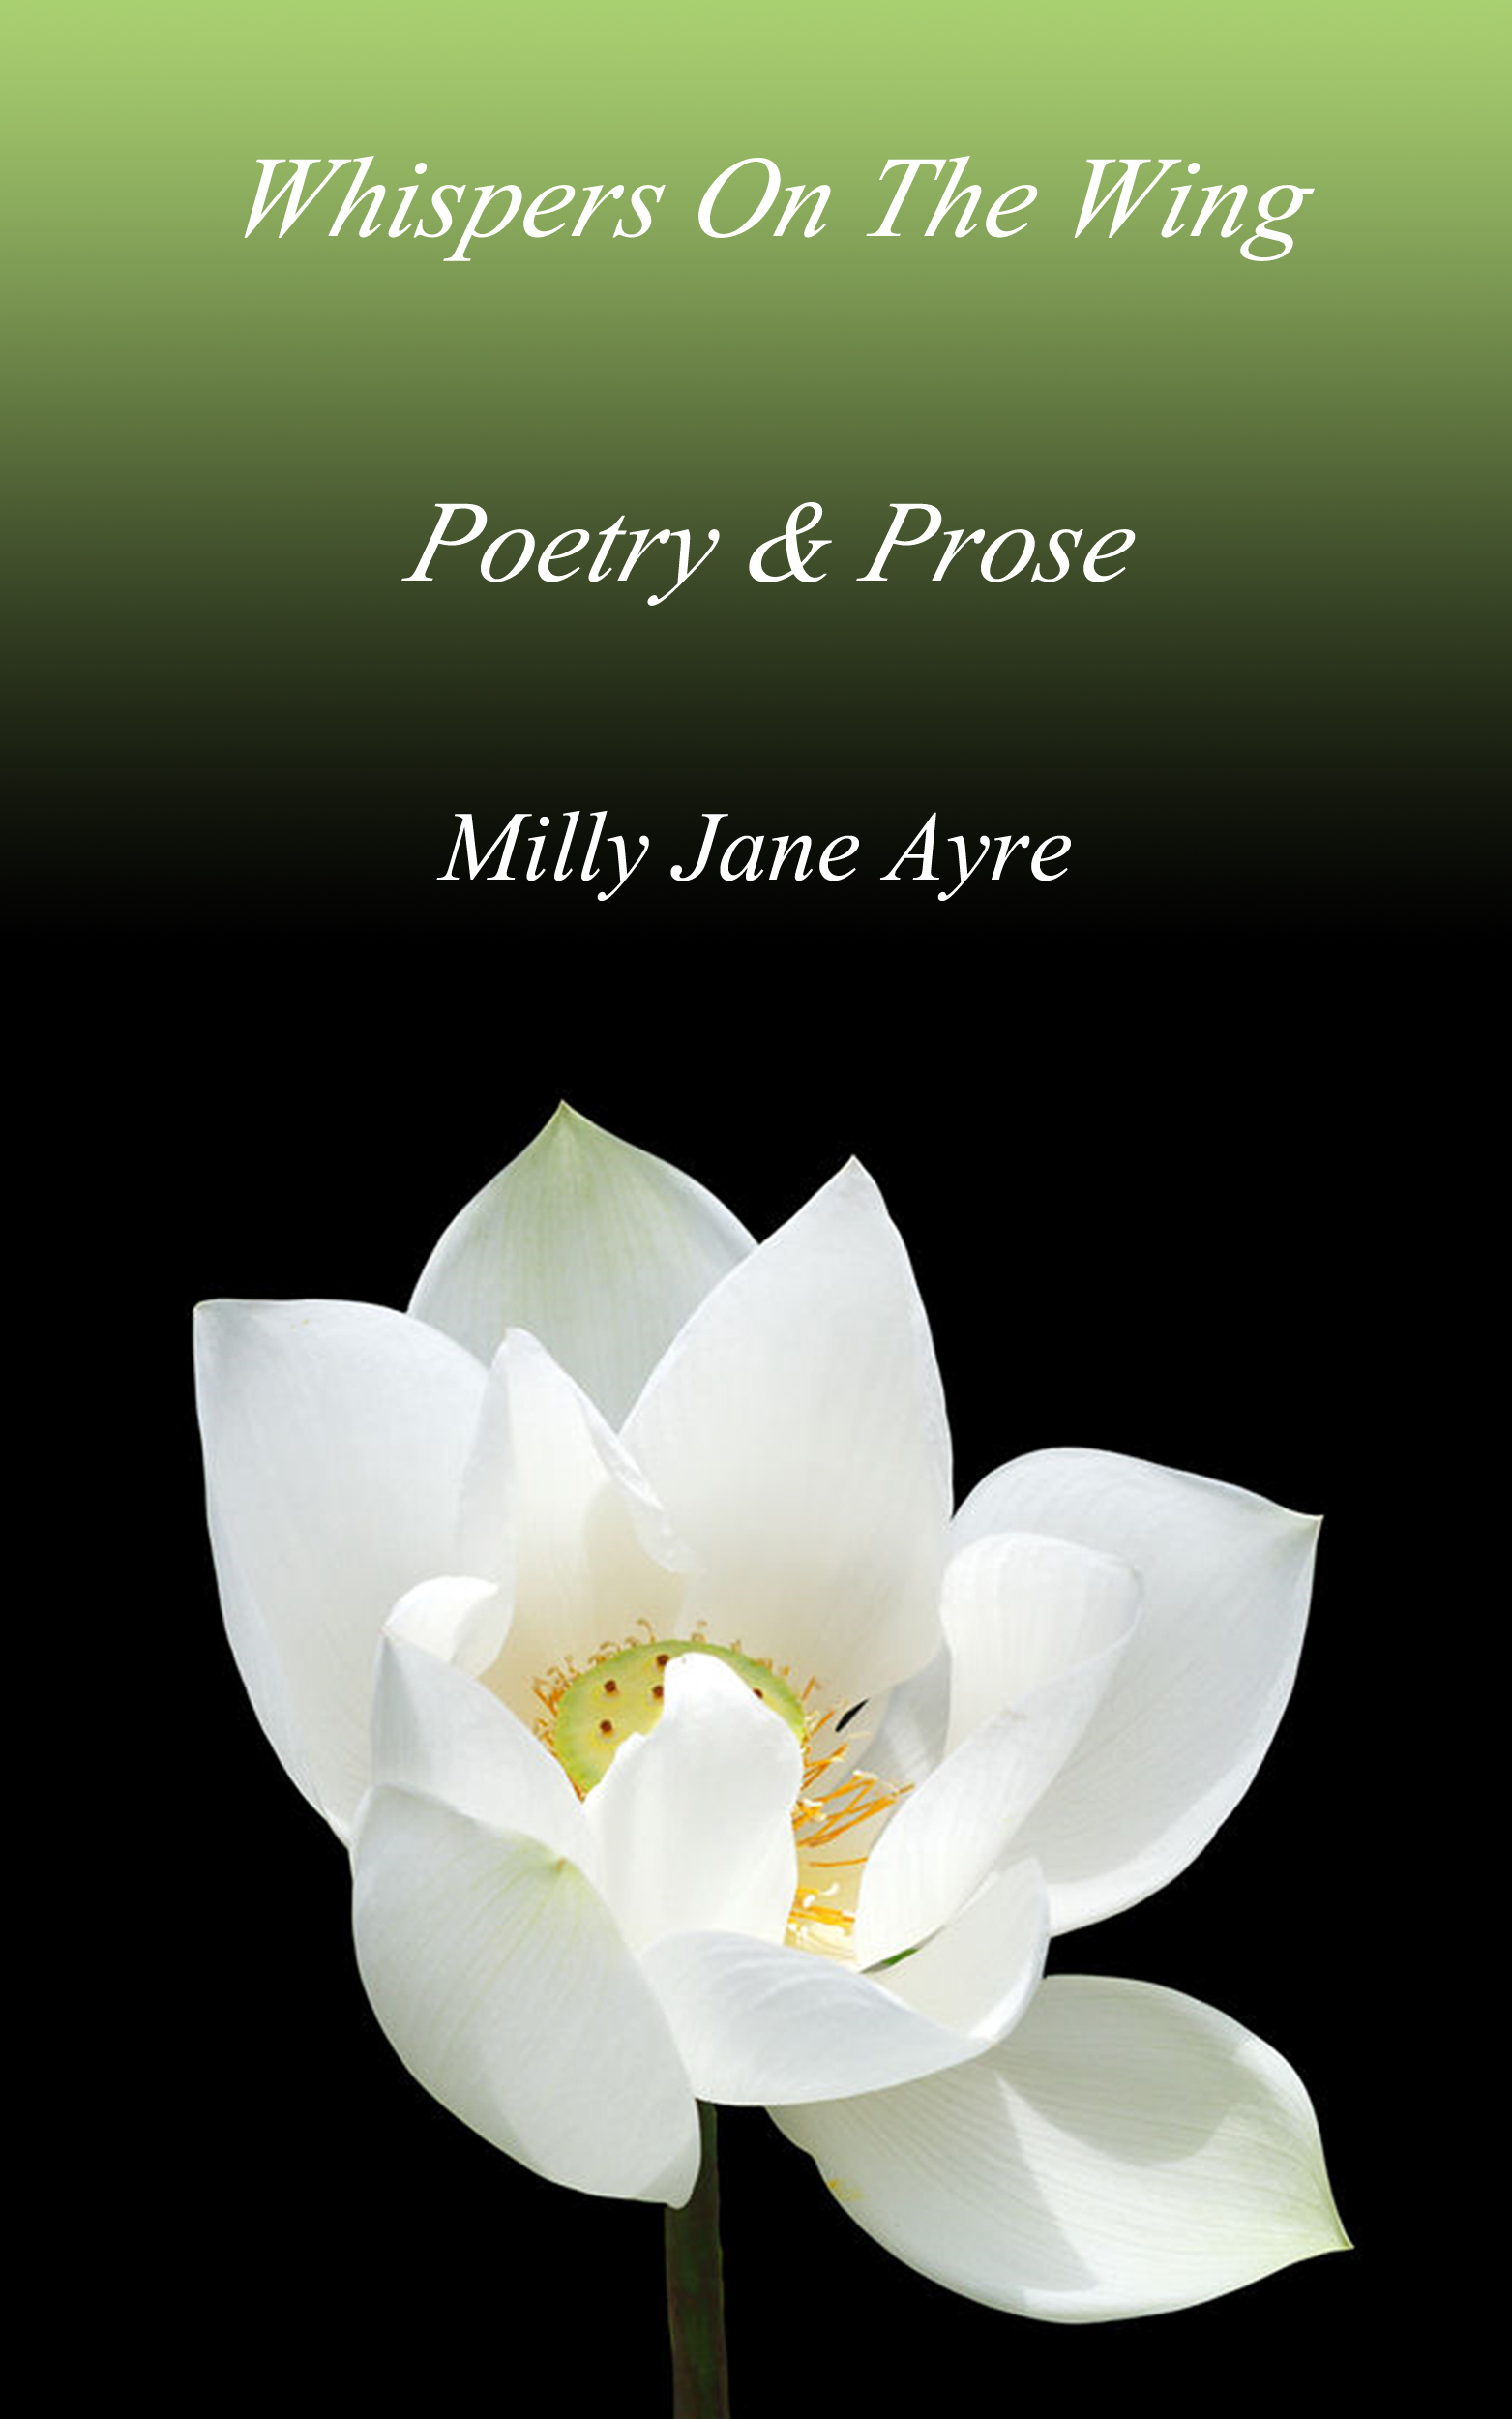 Whispers On The Wing Poetry Ebooks Whispersonthewing